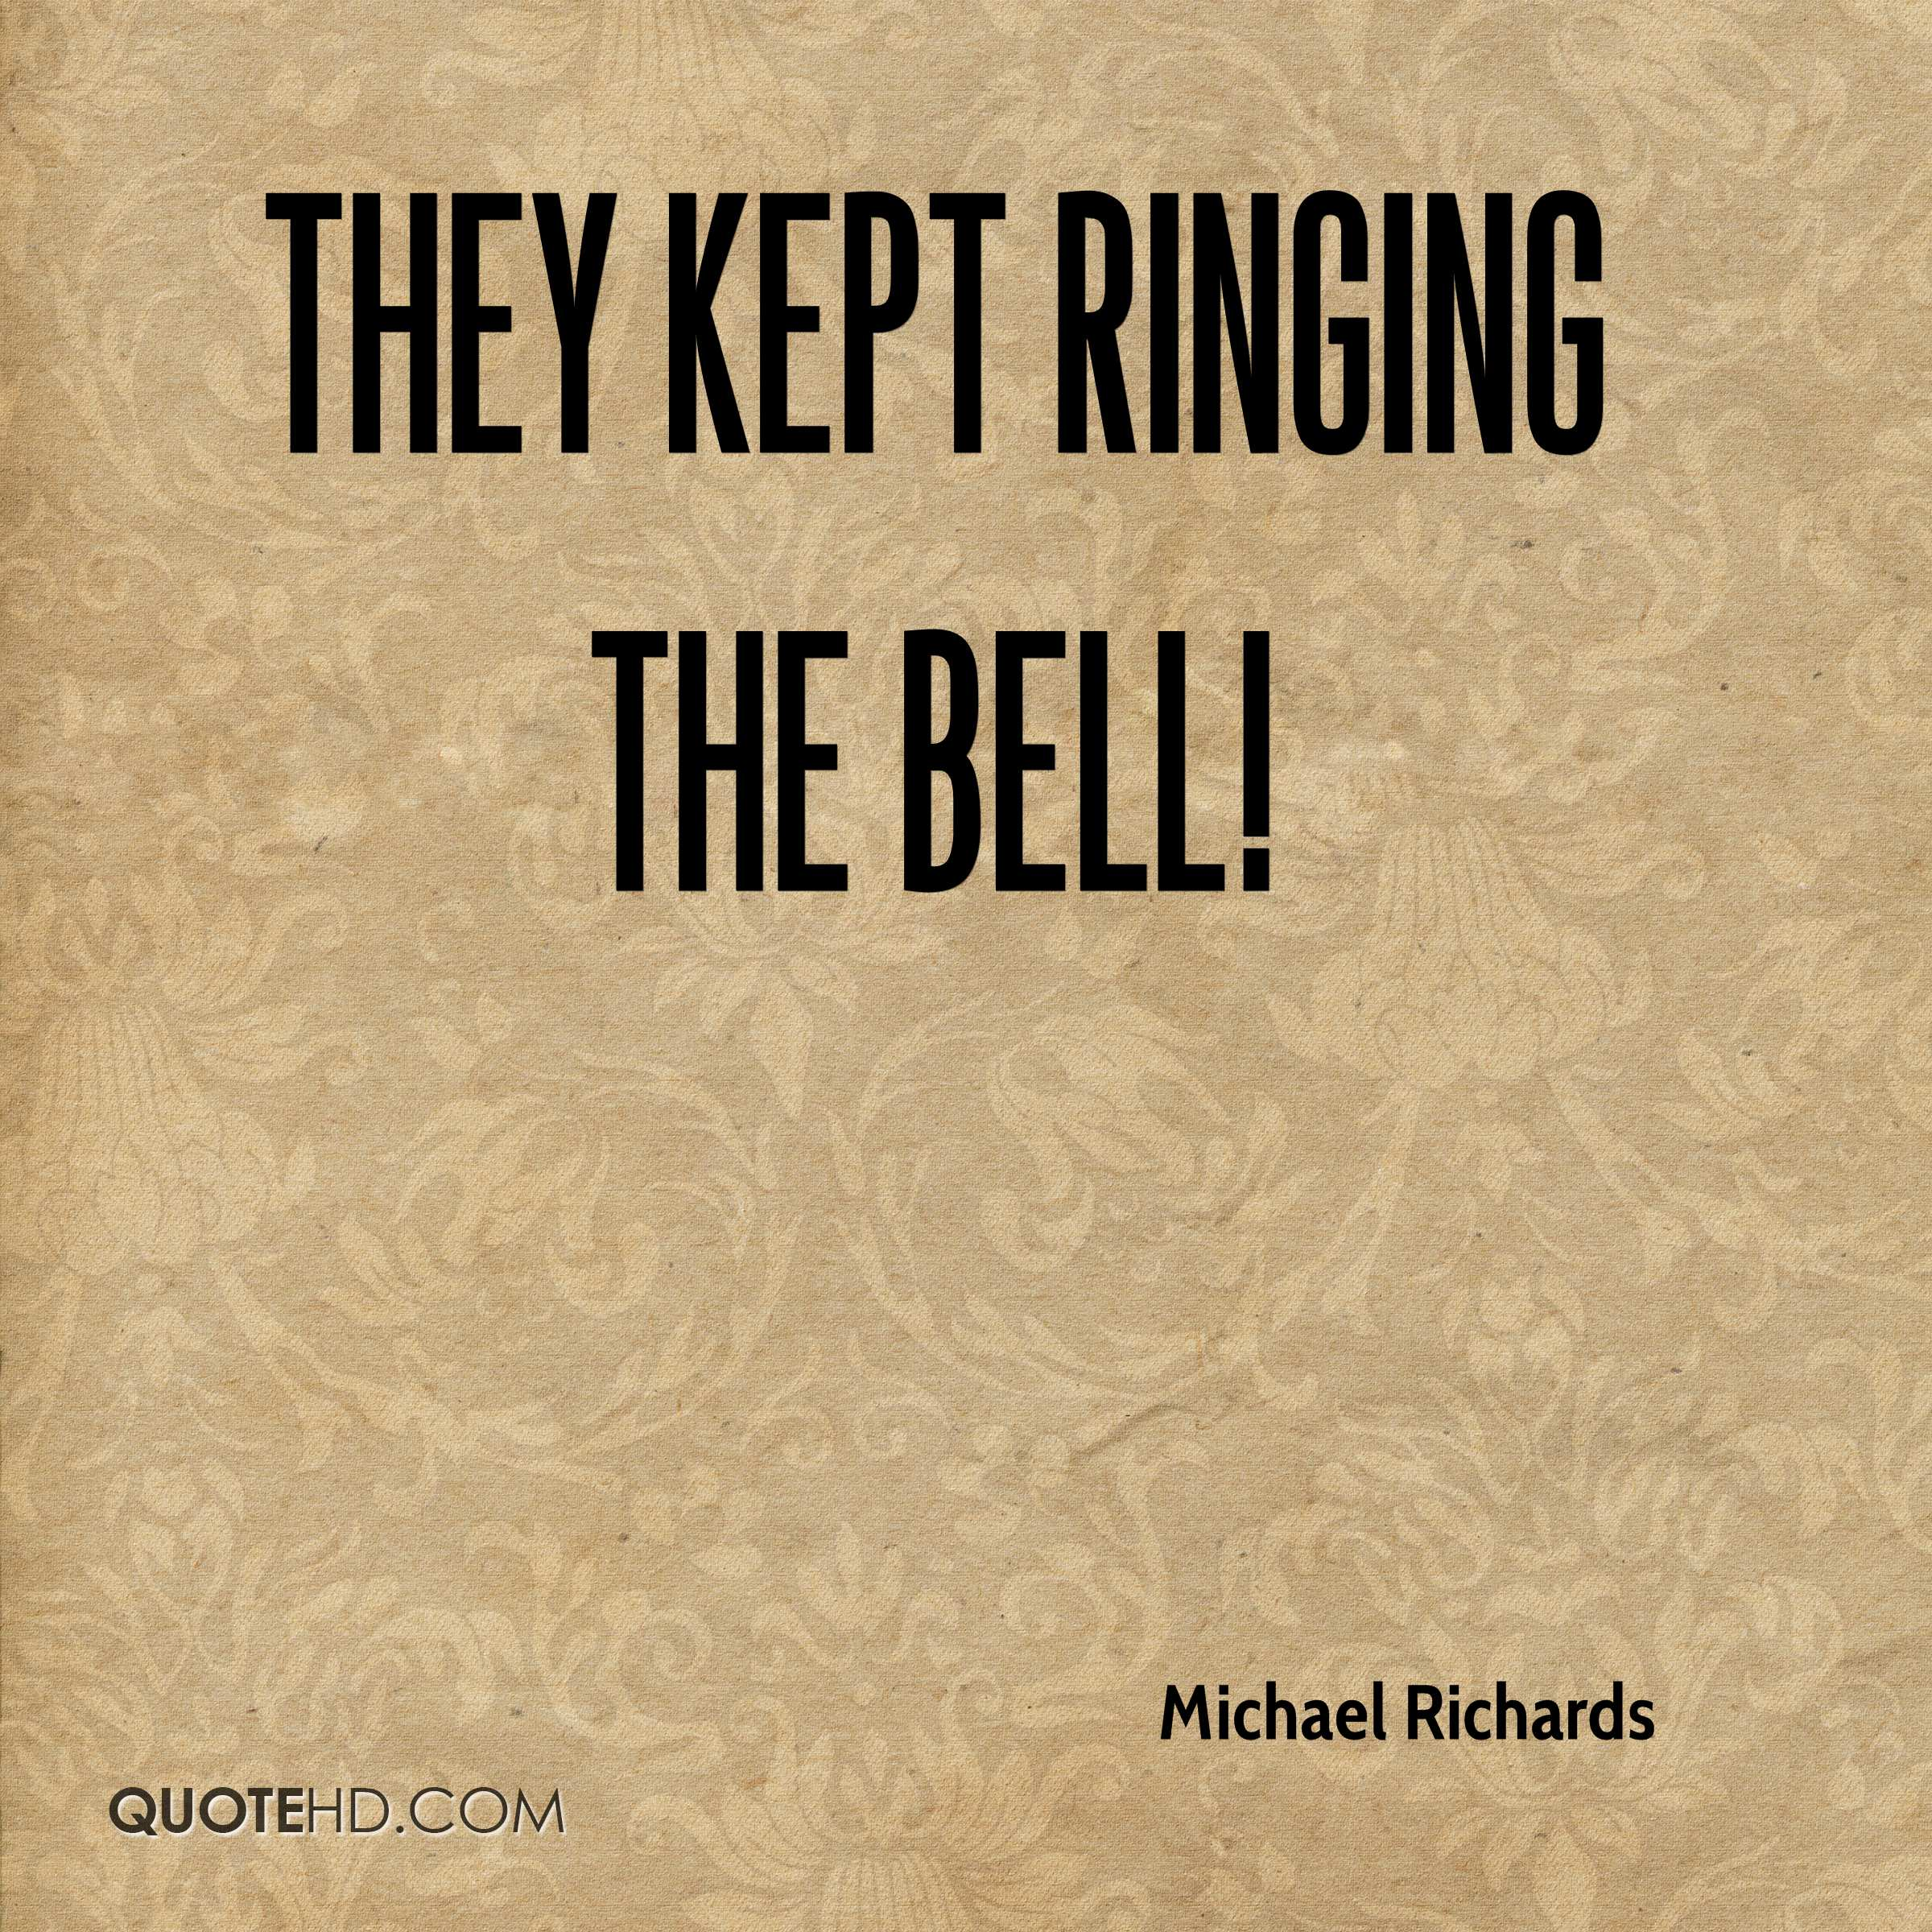 They kept ringing the bell!